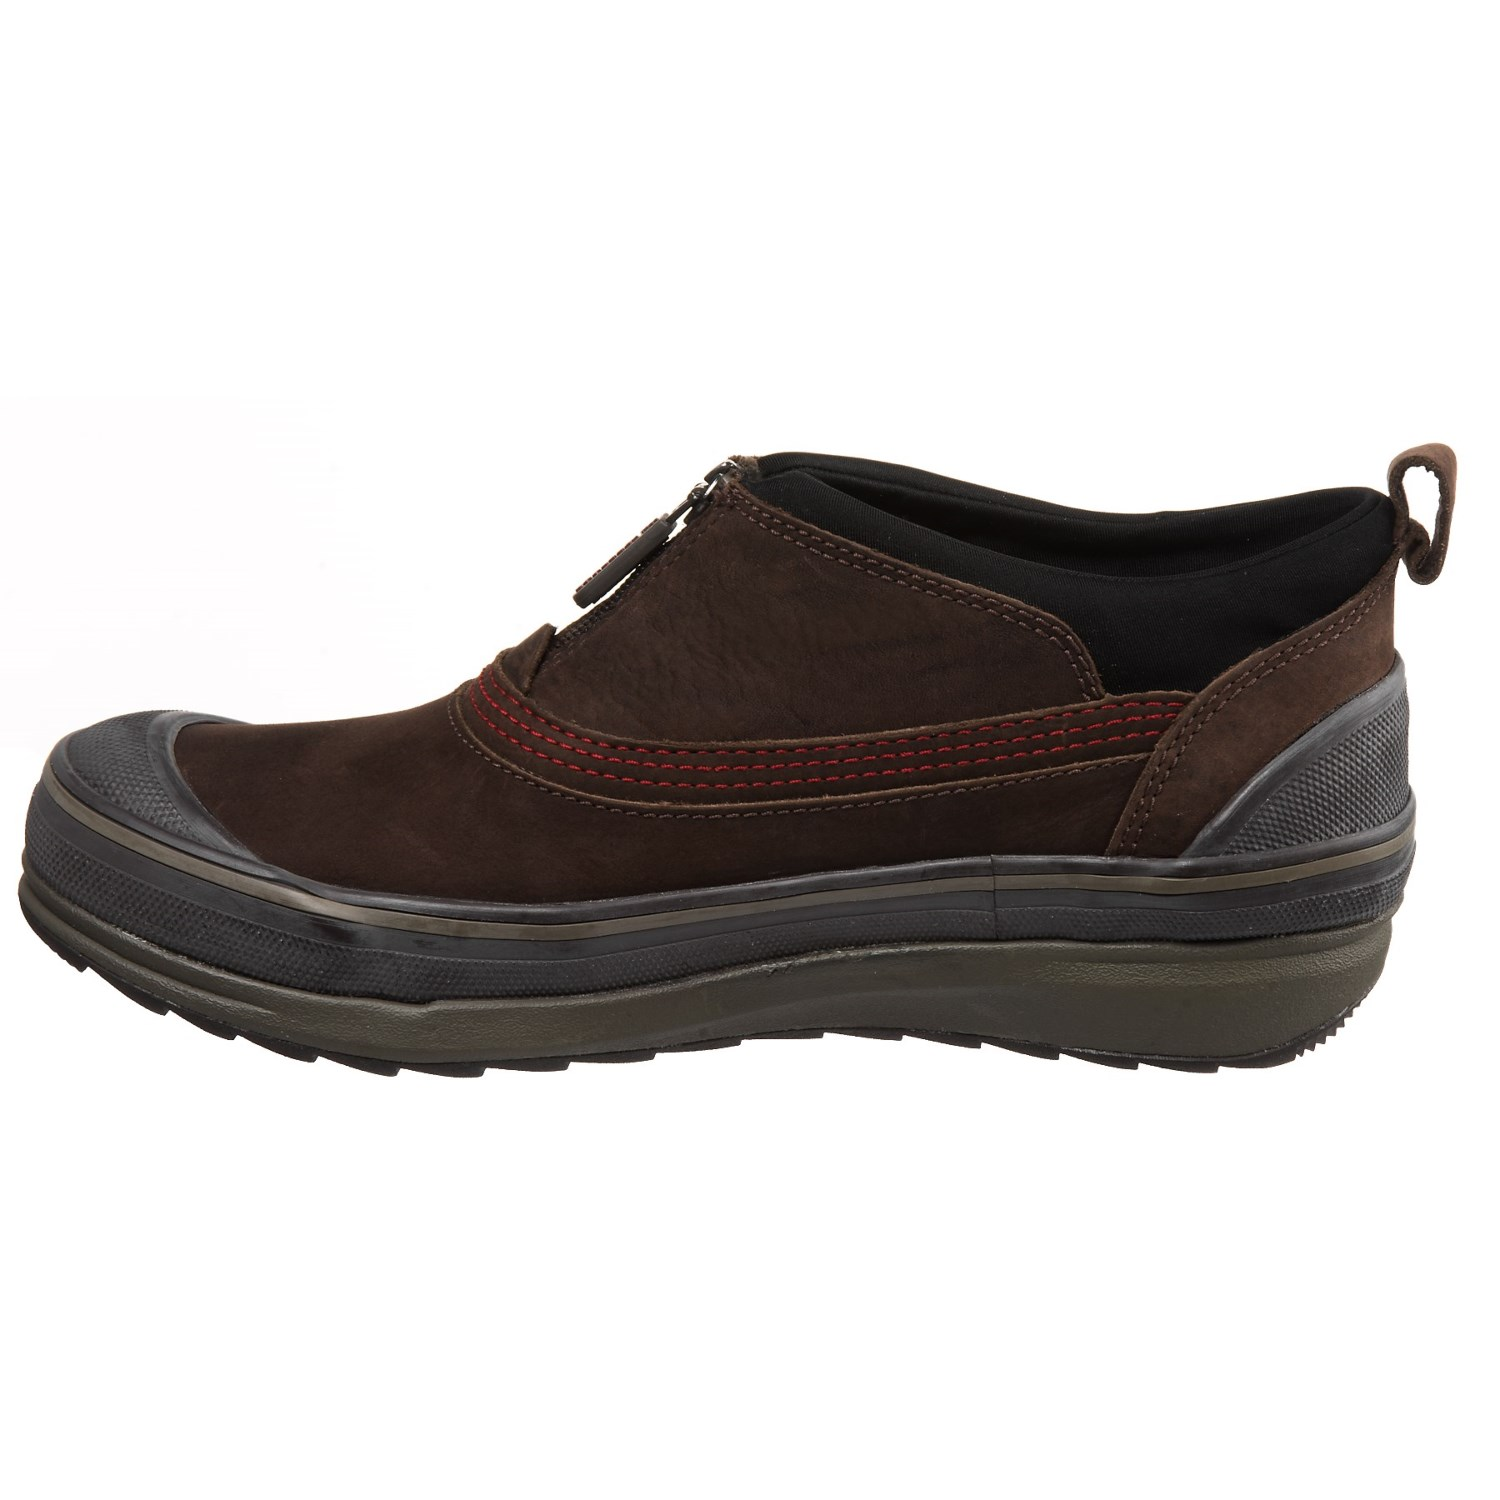 Clarks Waterproof Shoes Canada Style Guru Fashion